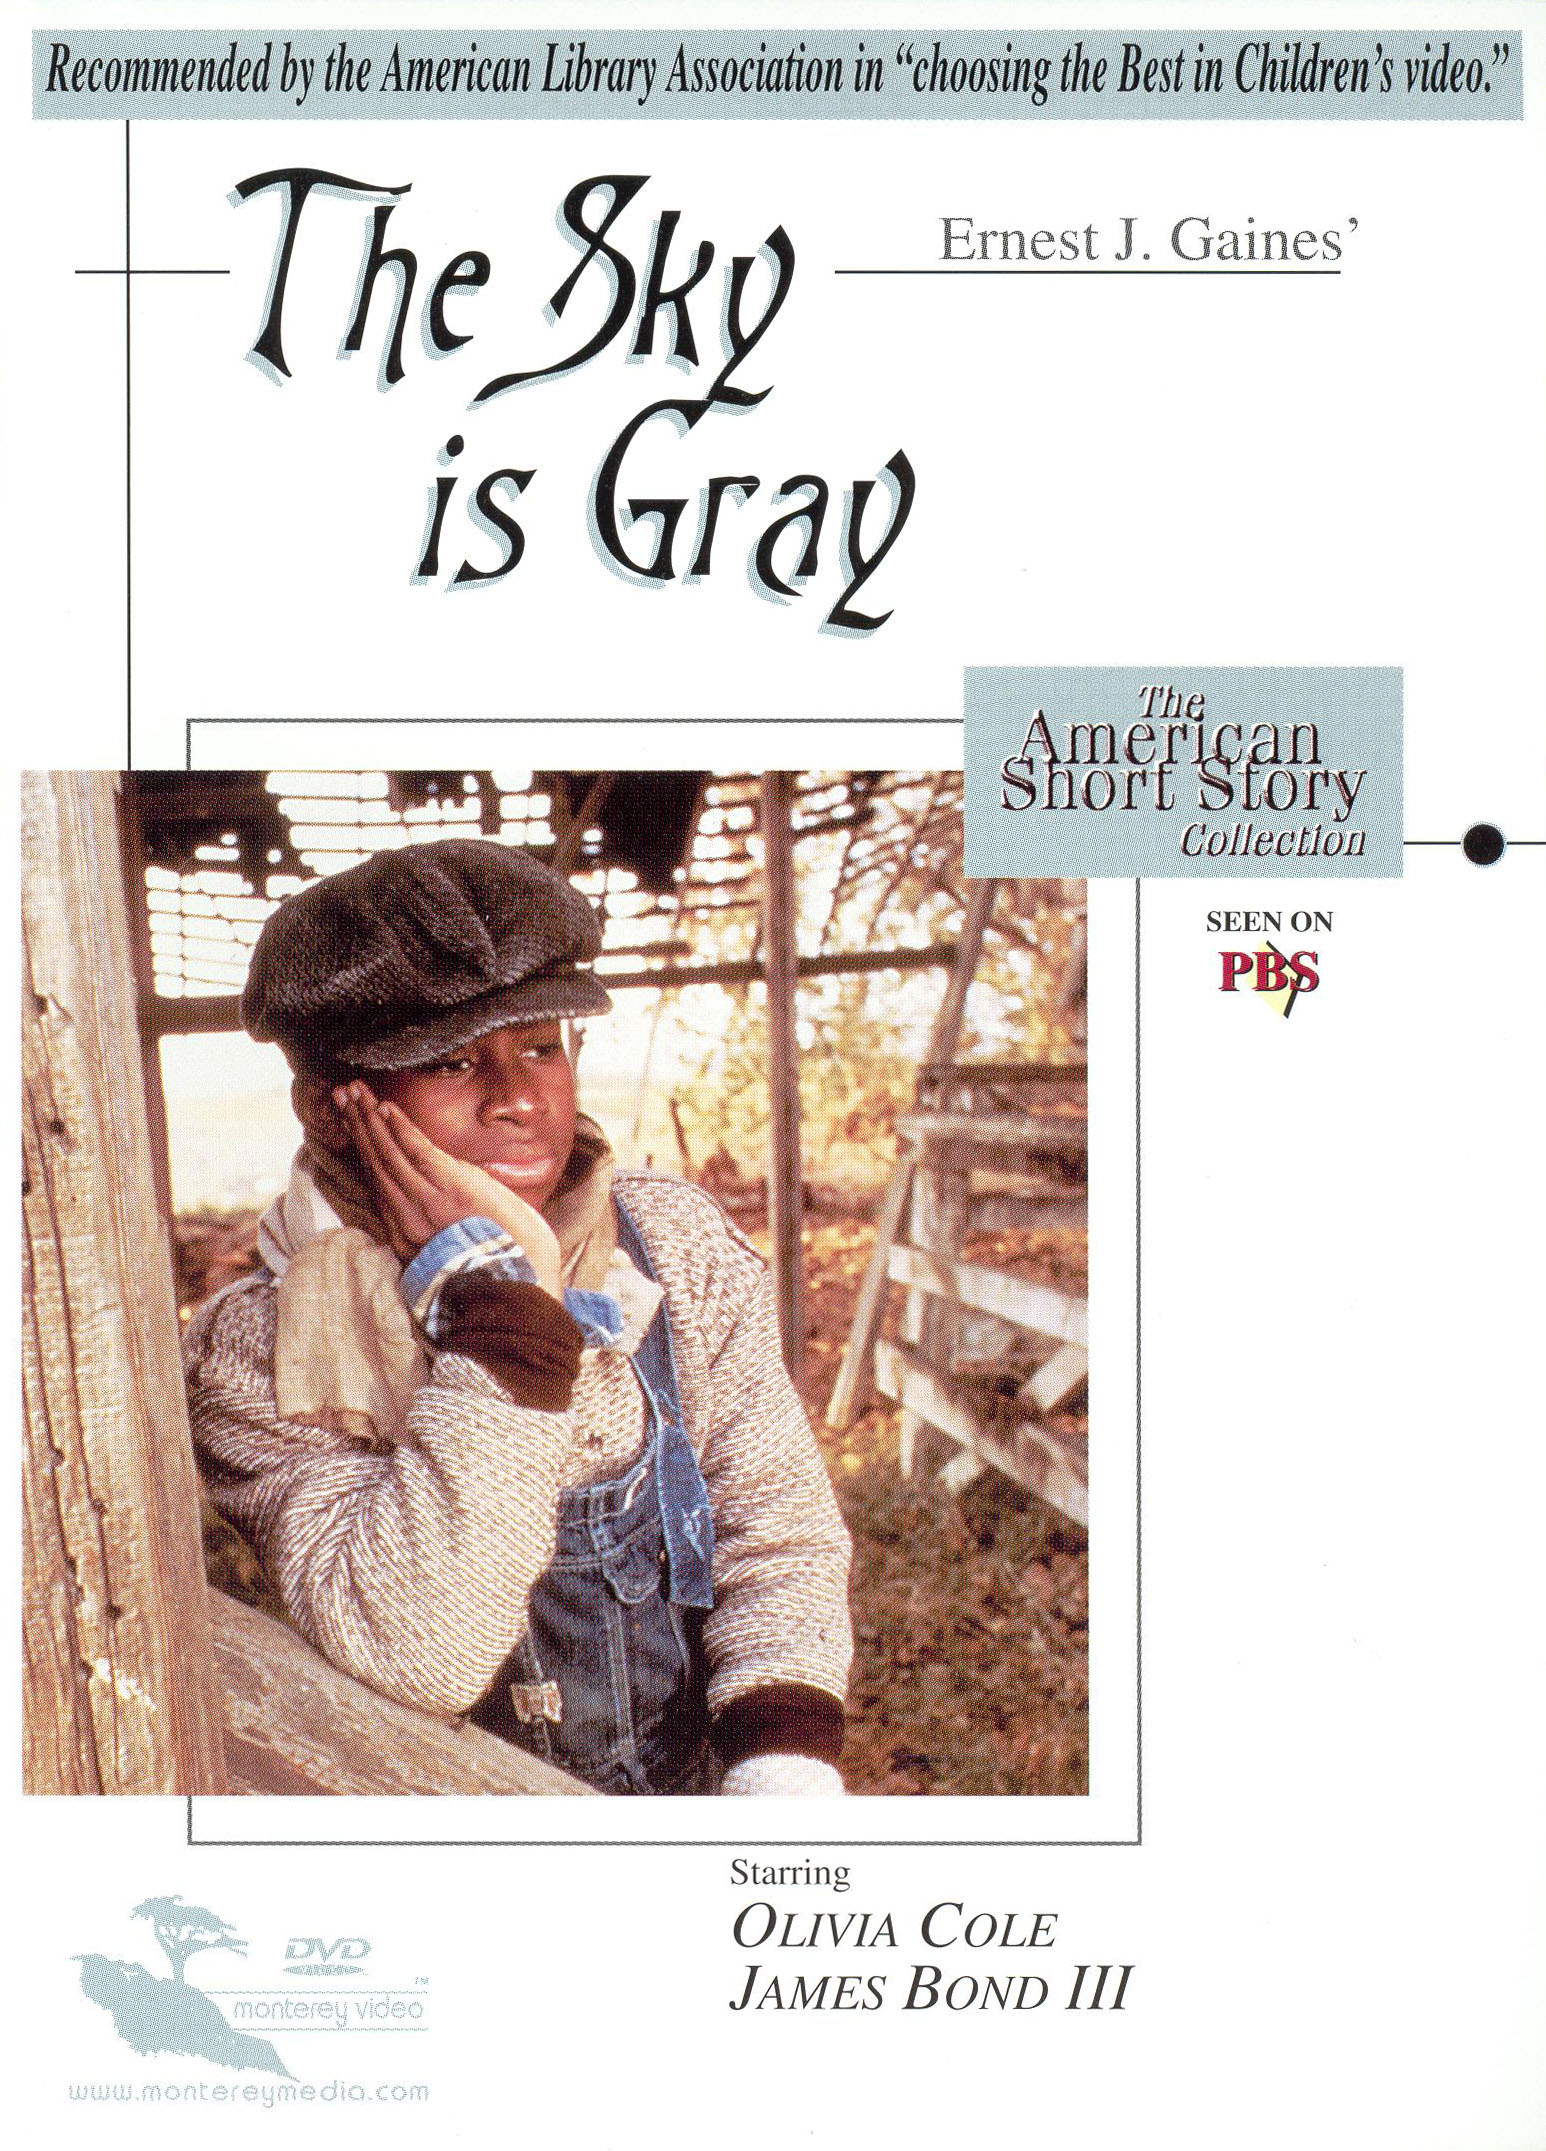 analysis of the short story the sky is gray by african american author ernest j gaines Voices from the quarters: the fiction of ernest j gaines baton rouge: louisiana state up, 2002 xv + 245 pp ernest gaines's novels and stories have had broad exposure in american culture over the past thirty years, particularly through the notable films that have been made of several of his books and one of his short stories.